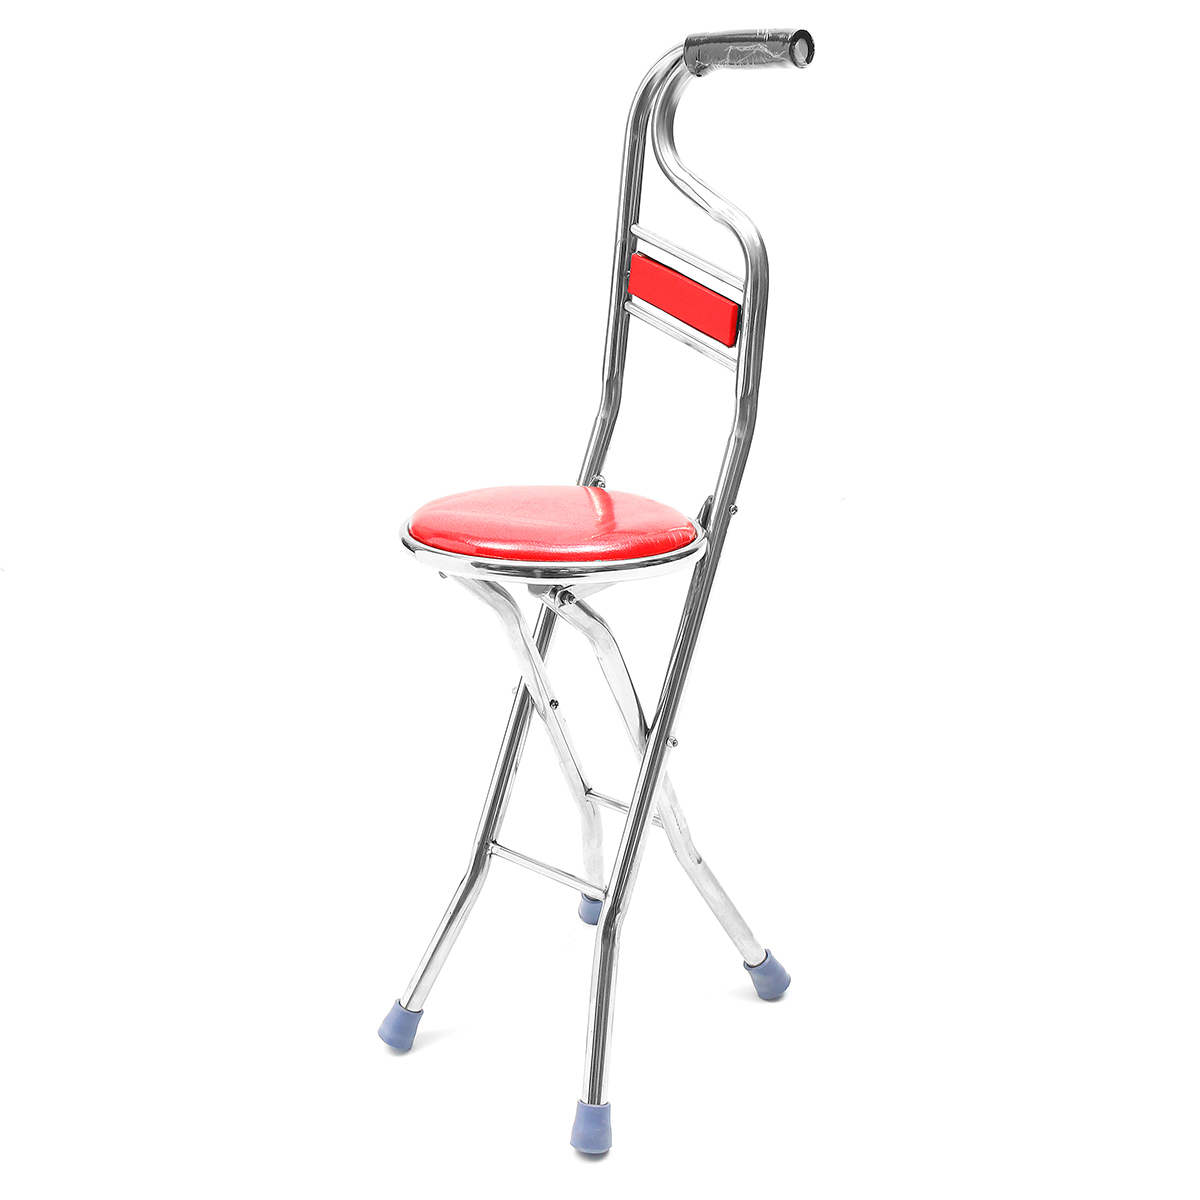 Walking Chair 2 In 1 Walking Stick Chair Seat Adjustable Stainless Steel